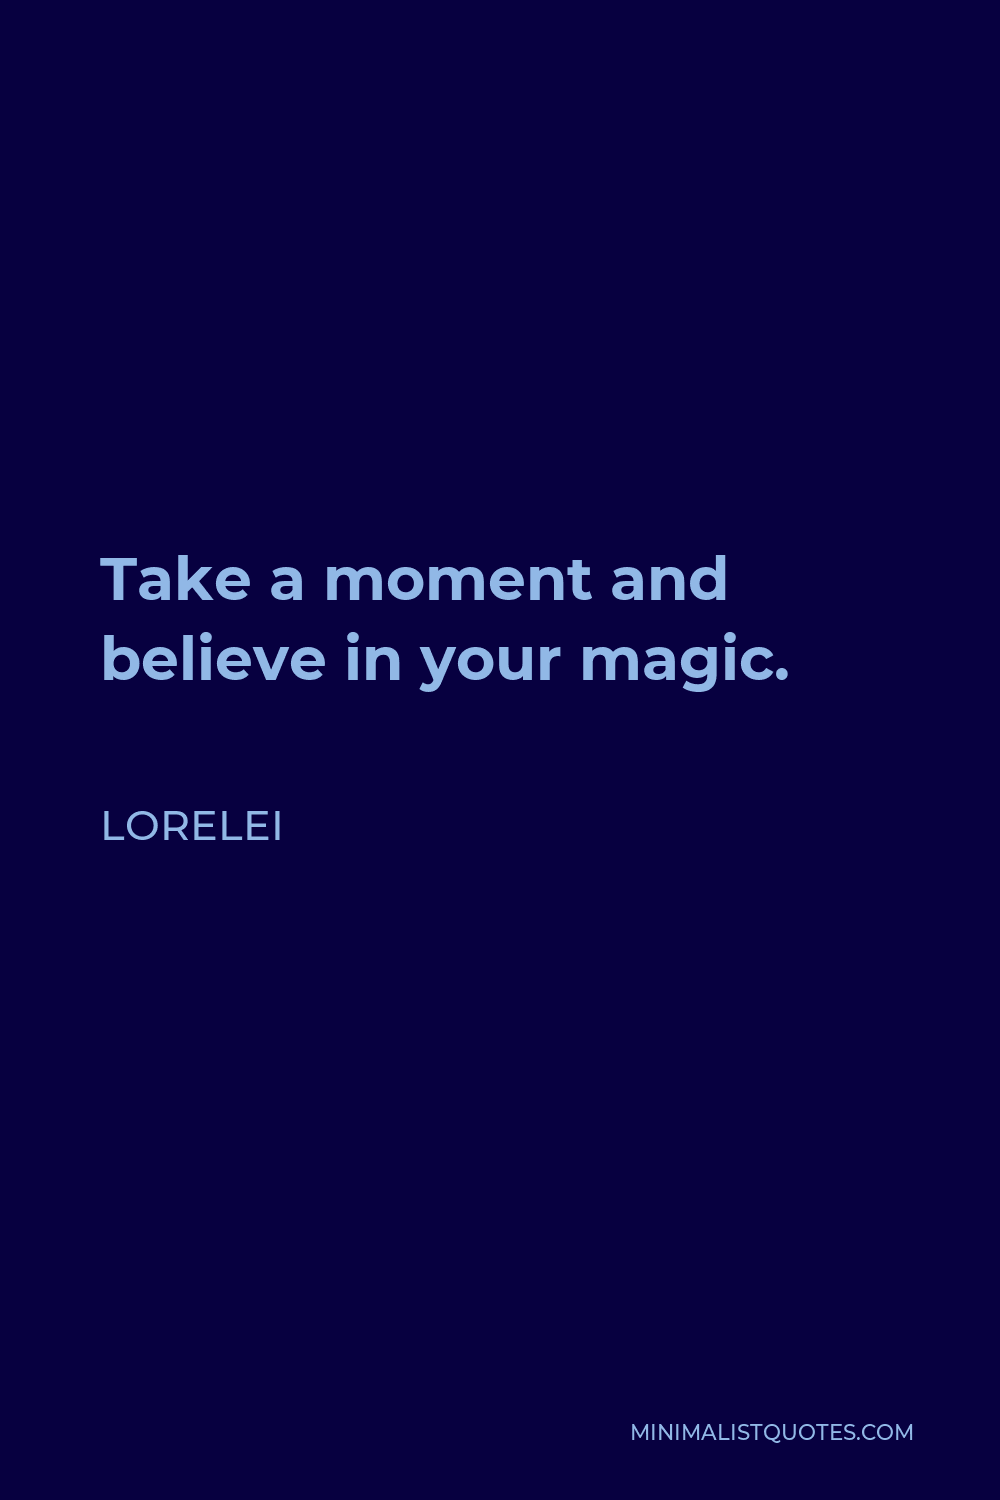 Lorelei Quote - Take a moment and believe in your magic.